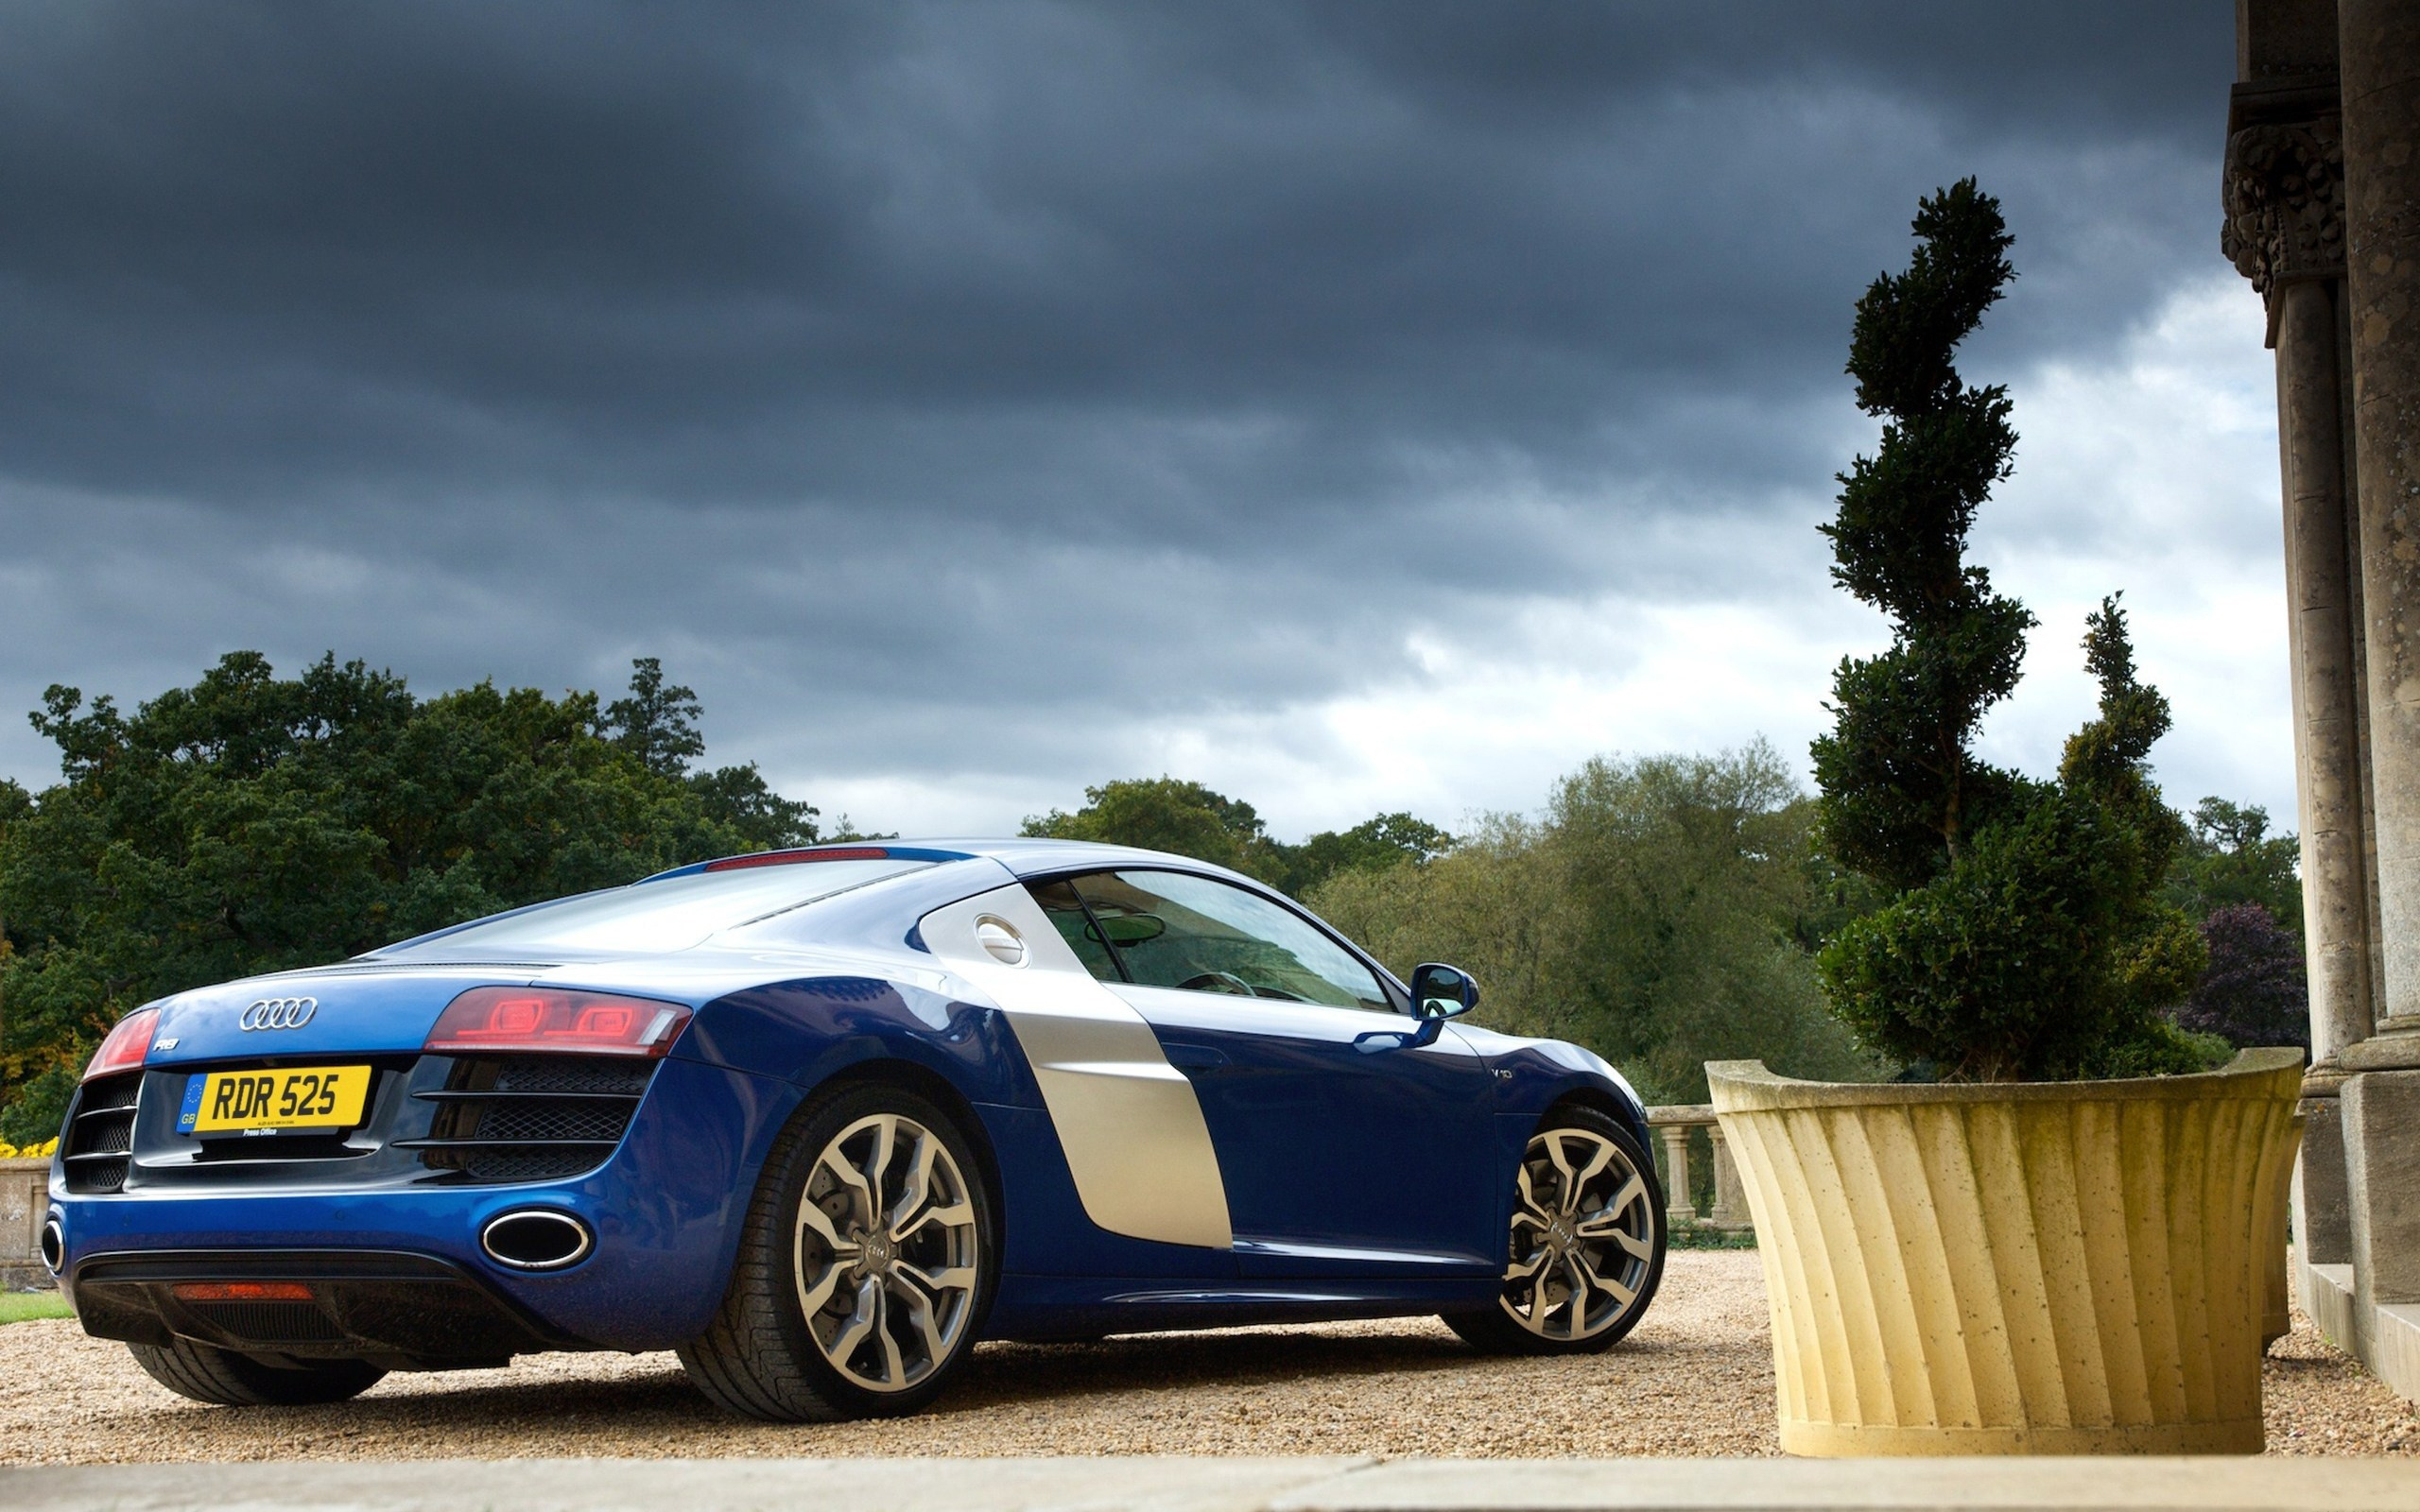 277 audi r8 hd wallpapers | background images - wallpaper abyss